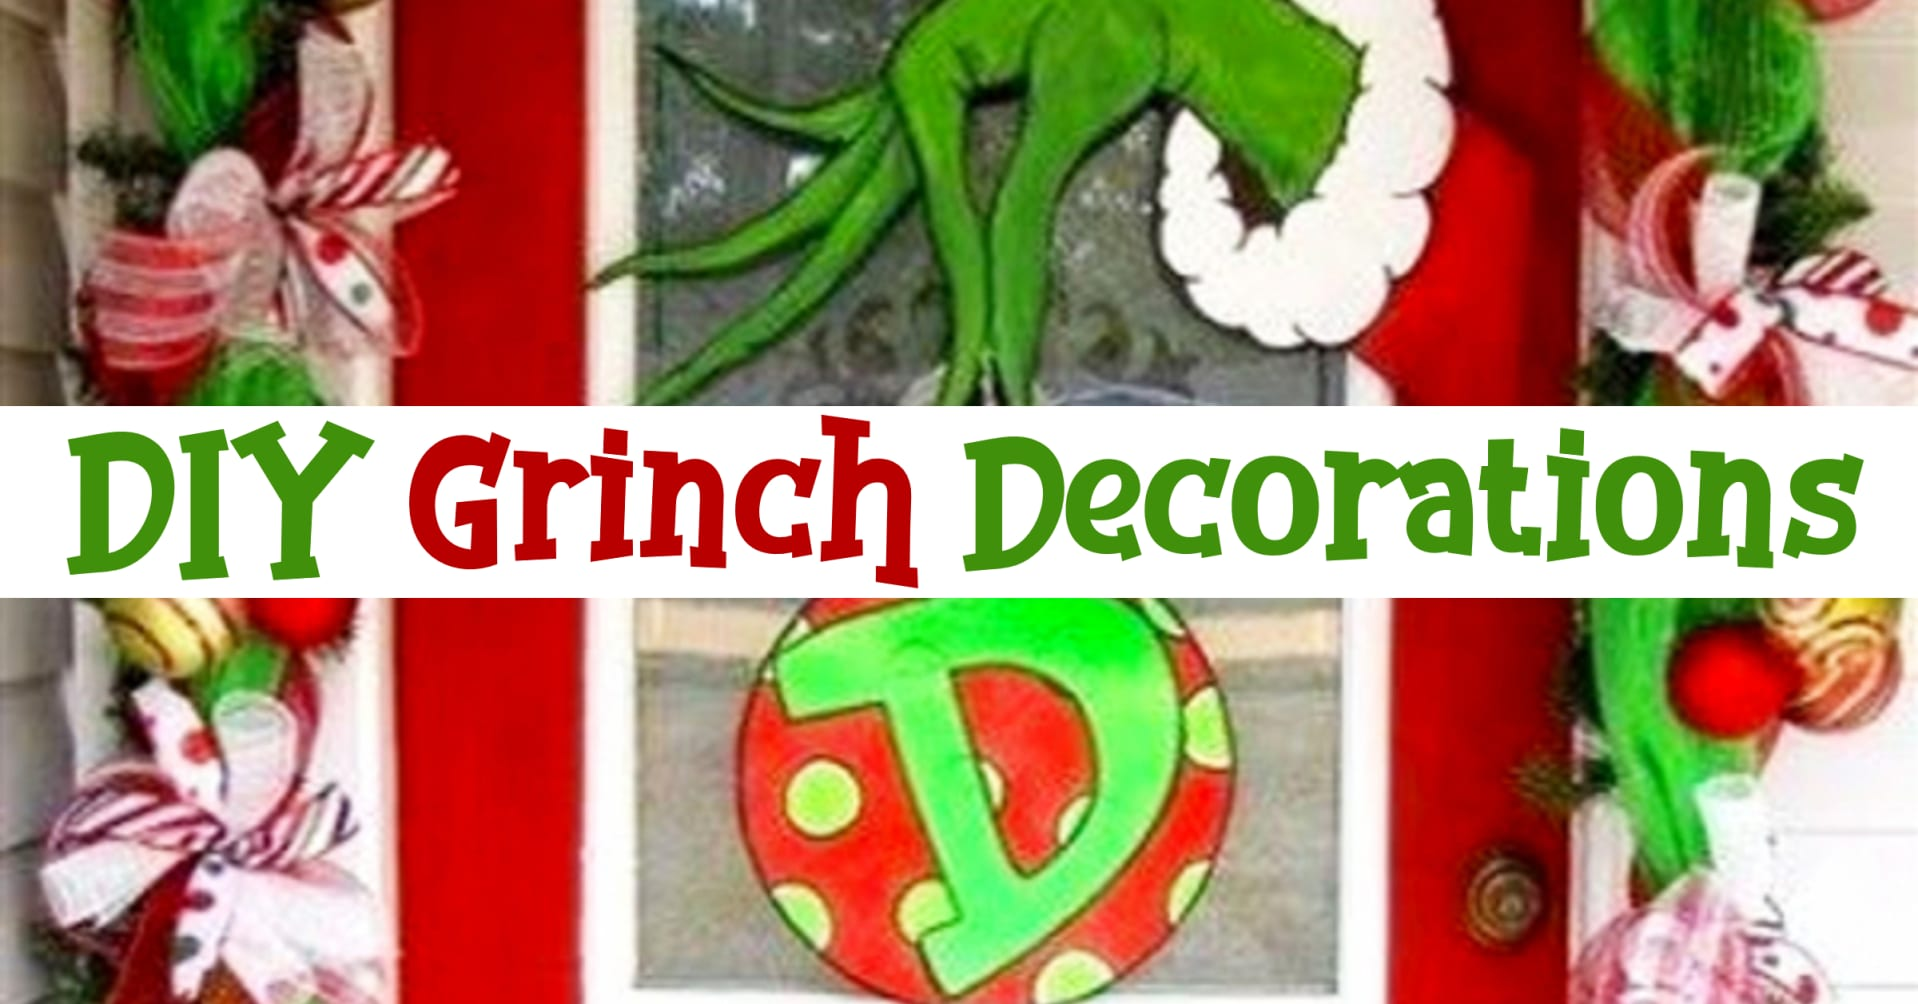 DIY Grinch Decorations and Grinch Christmas Ornaments - Fun and Easy DIY Grinch Decorations, Christmas Crafts and Ornaments for kids to make or as handmade gifts